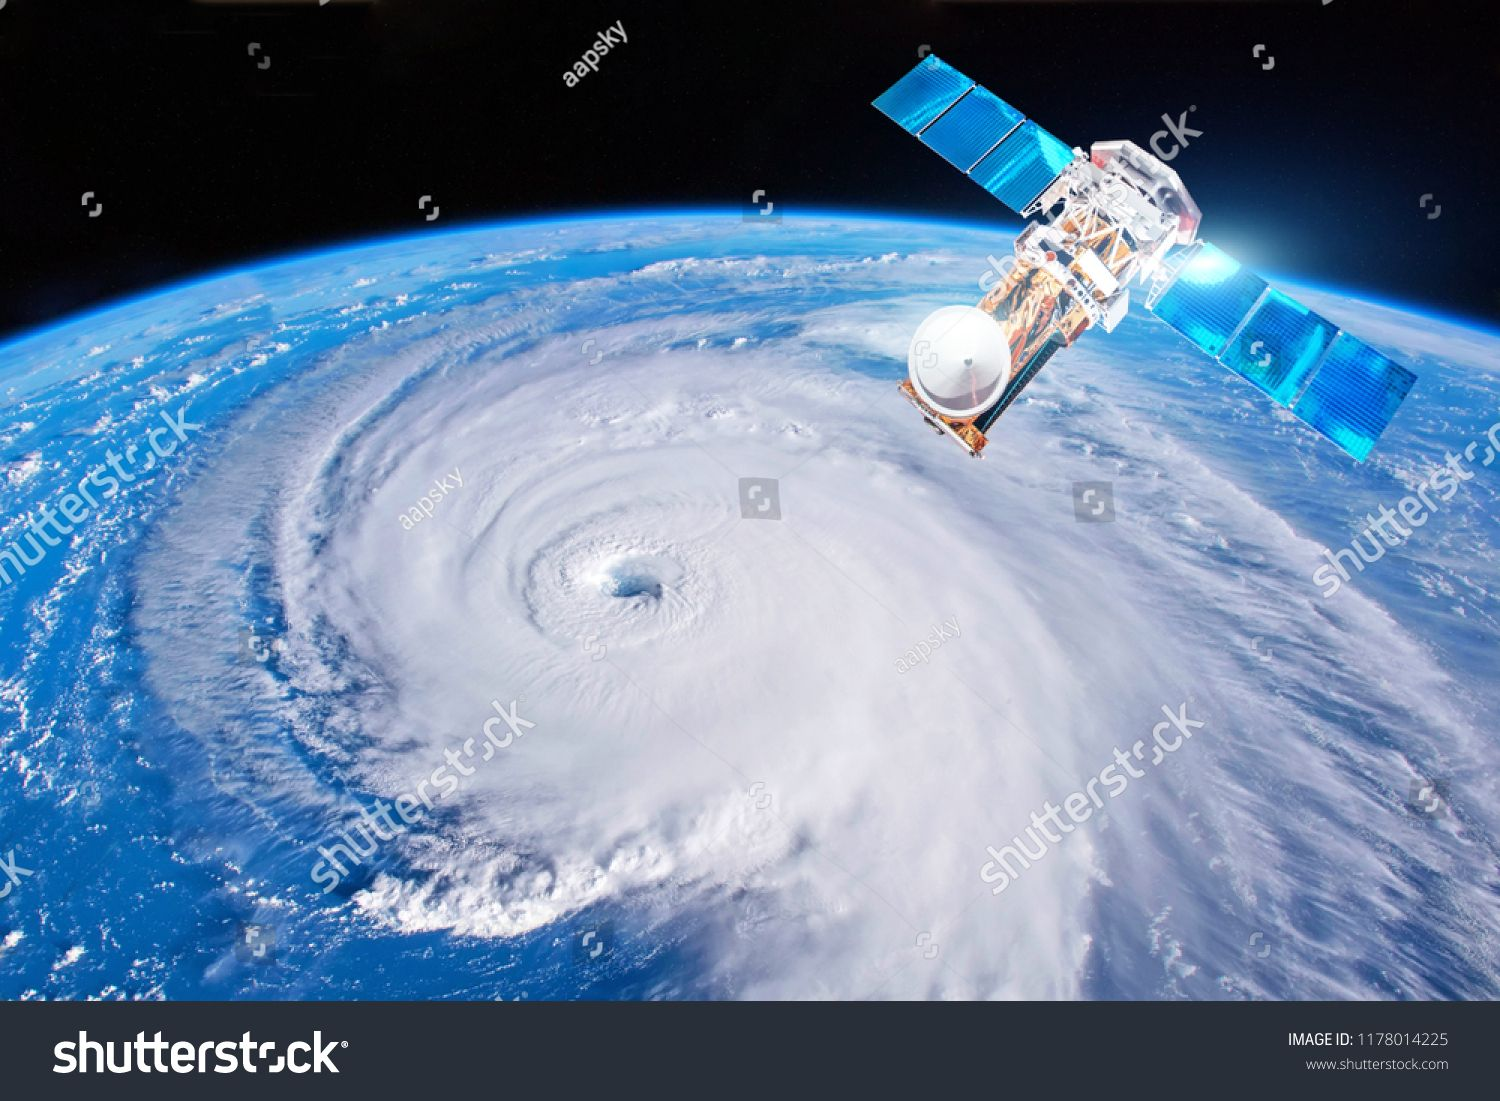 Research Probing Monitoring Hurricane Florence Satellite Above The Earth Makes Measurements Of The Weather Parameters Elements Probe Nasa Images Satellites